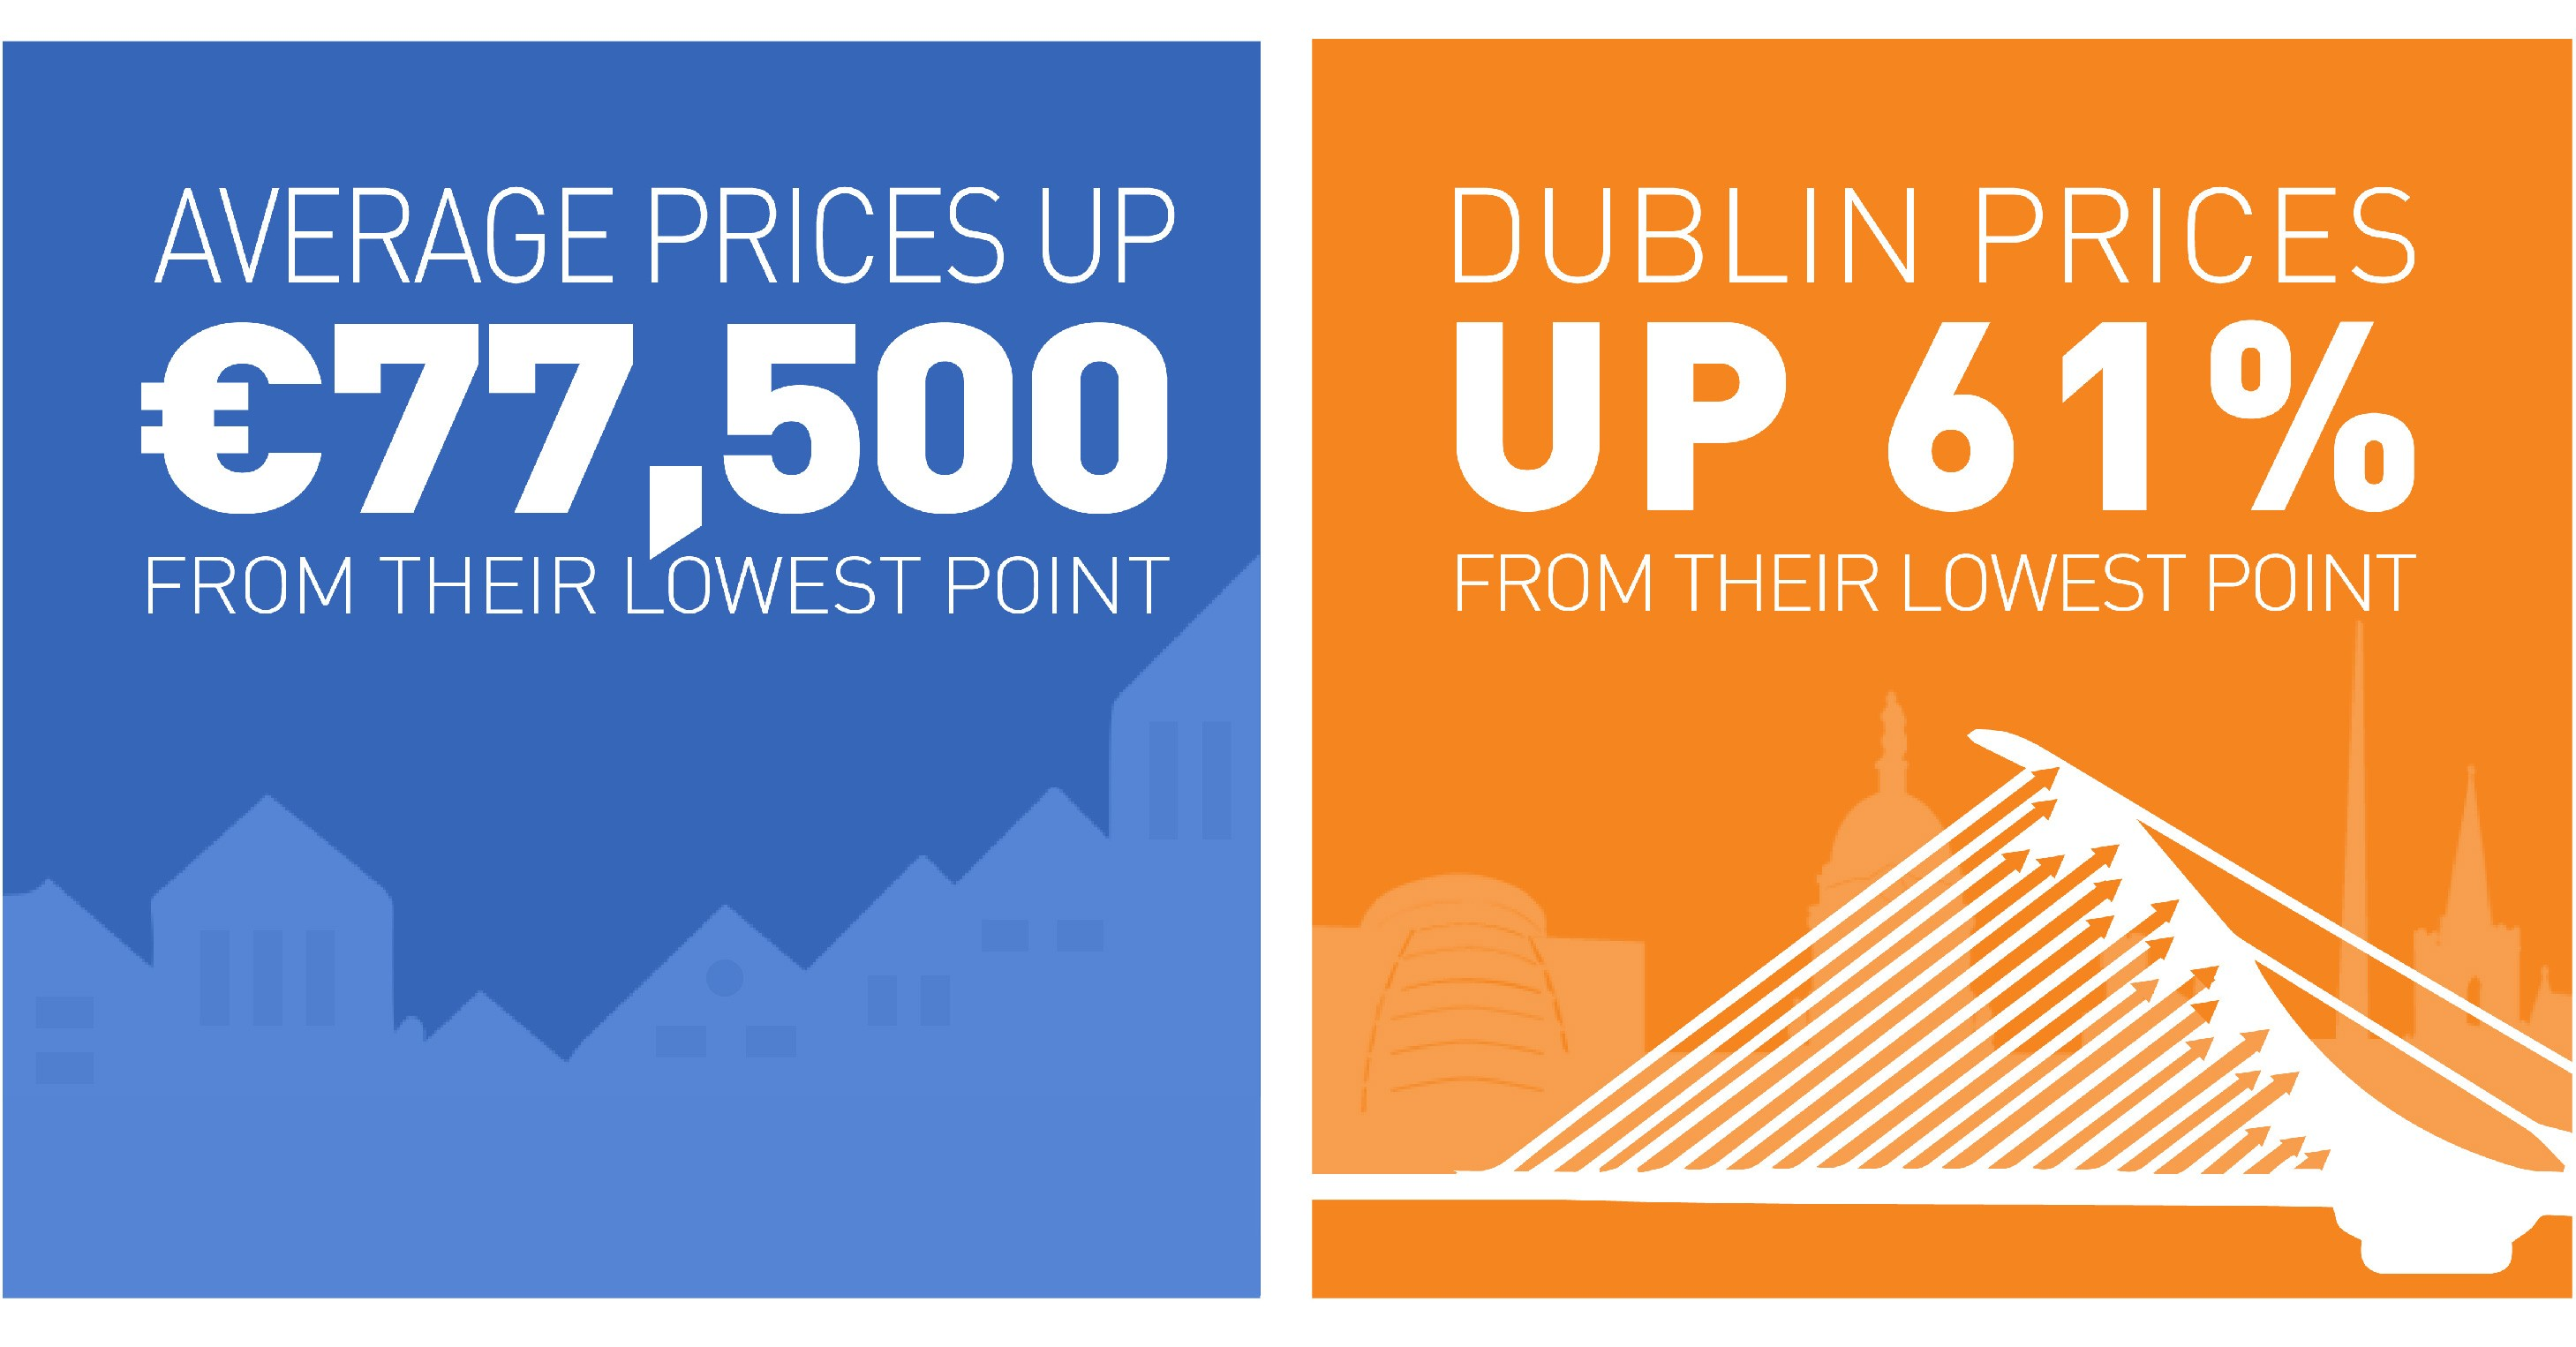 Average prices up €77,500 from their lowest point